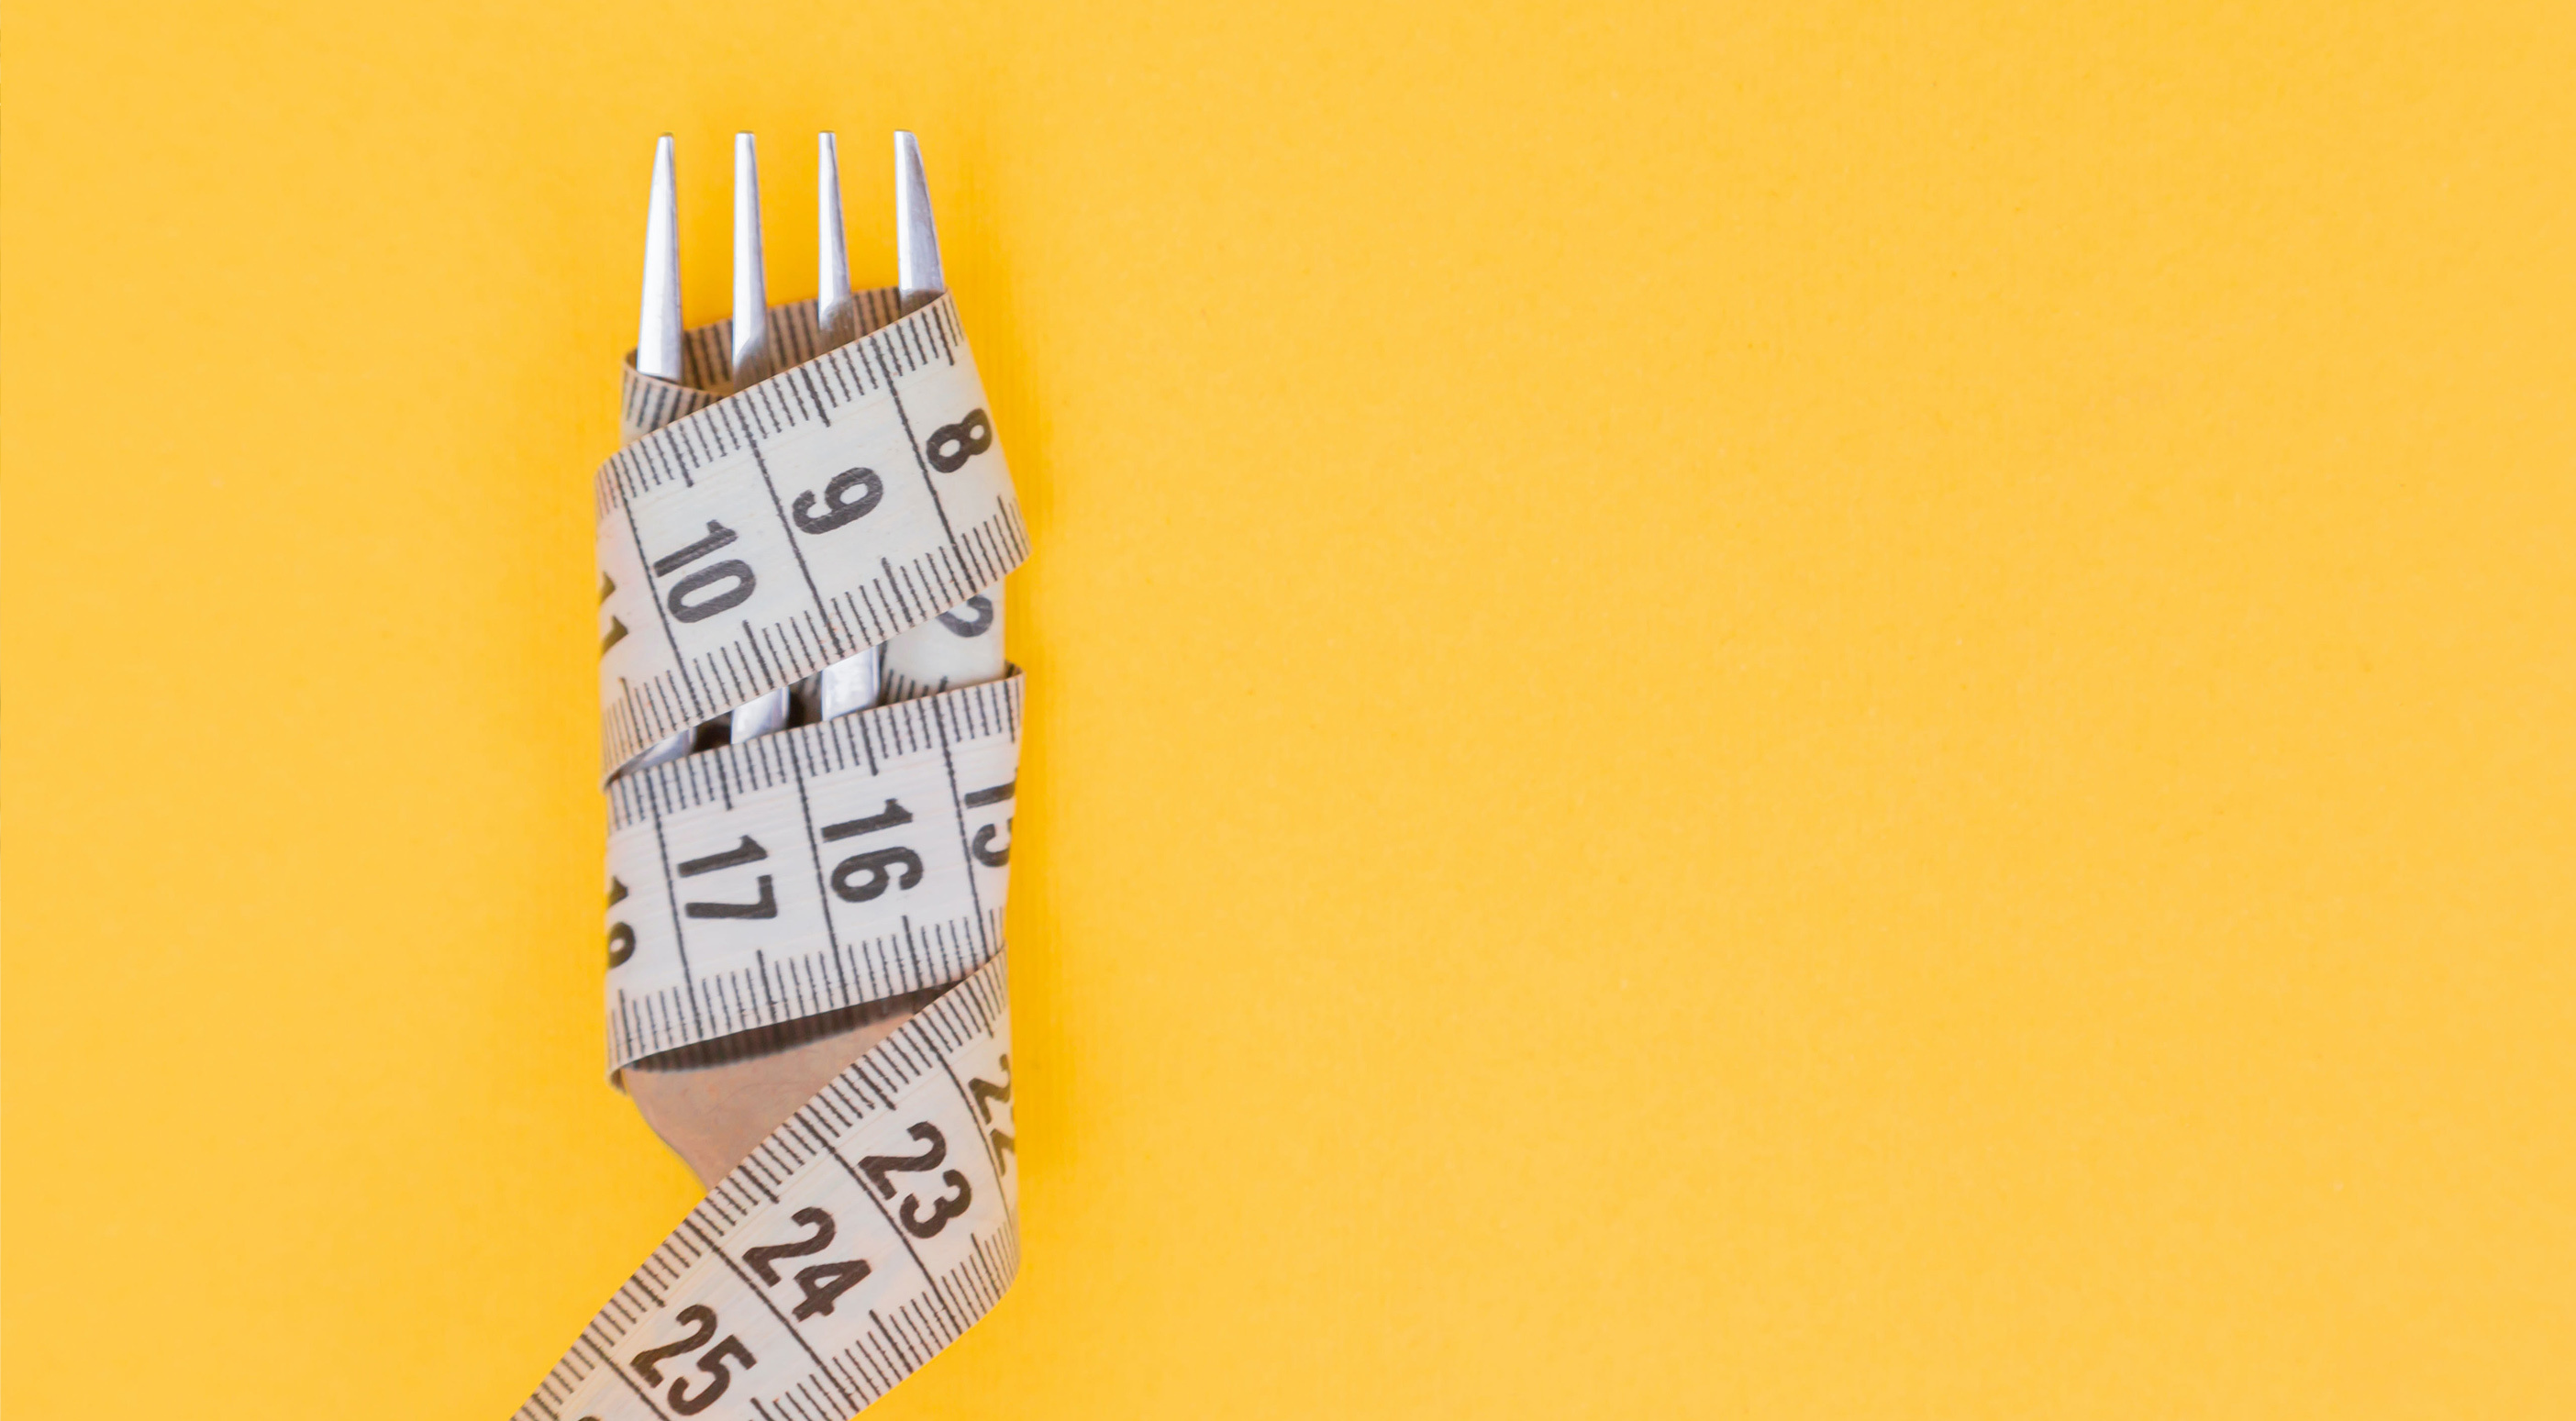 A fork covered by a tape measure